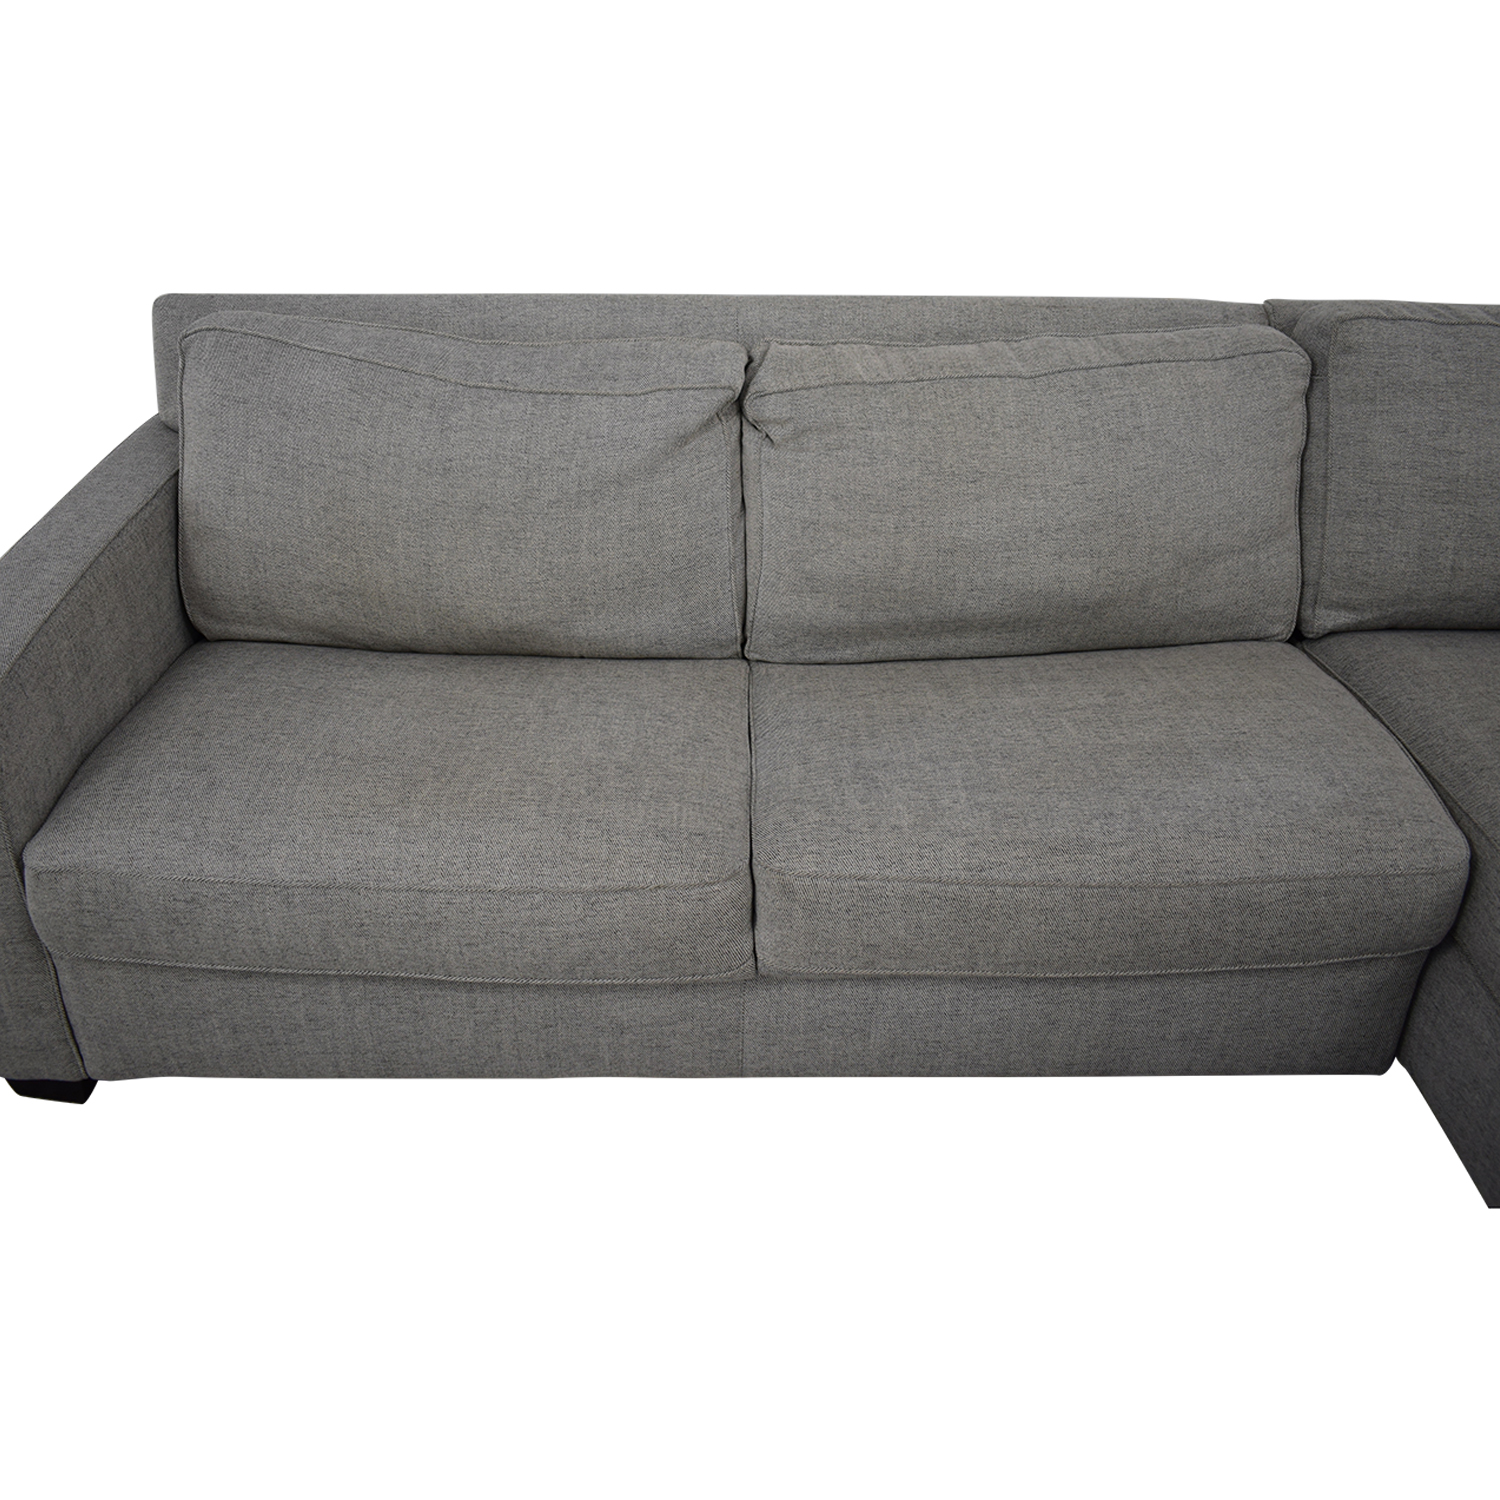 West Elm West Elm Henry Sectional Sleeper Sofa dimensions